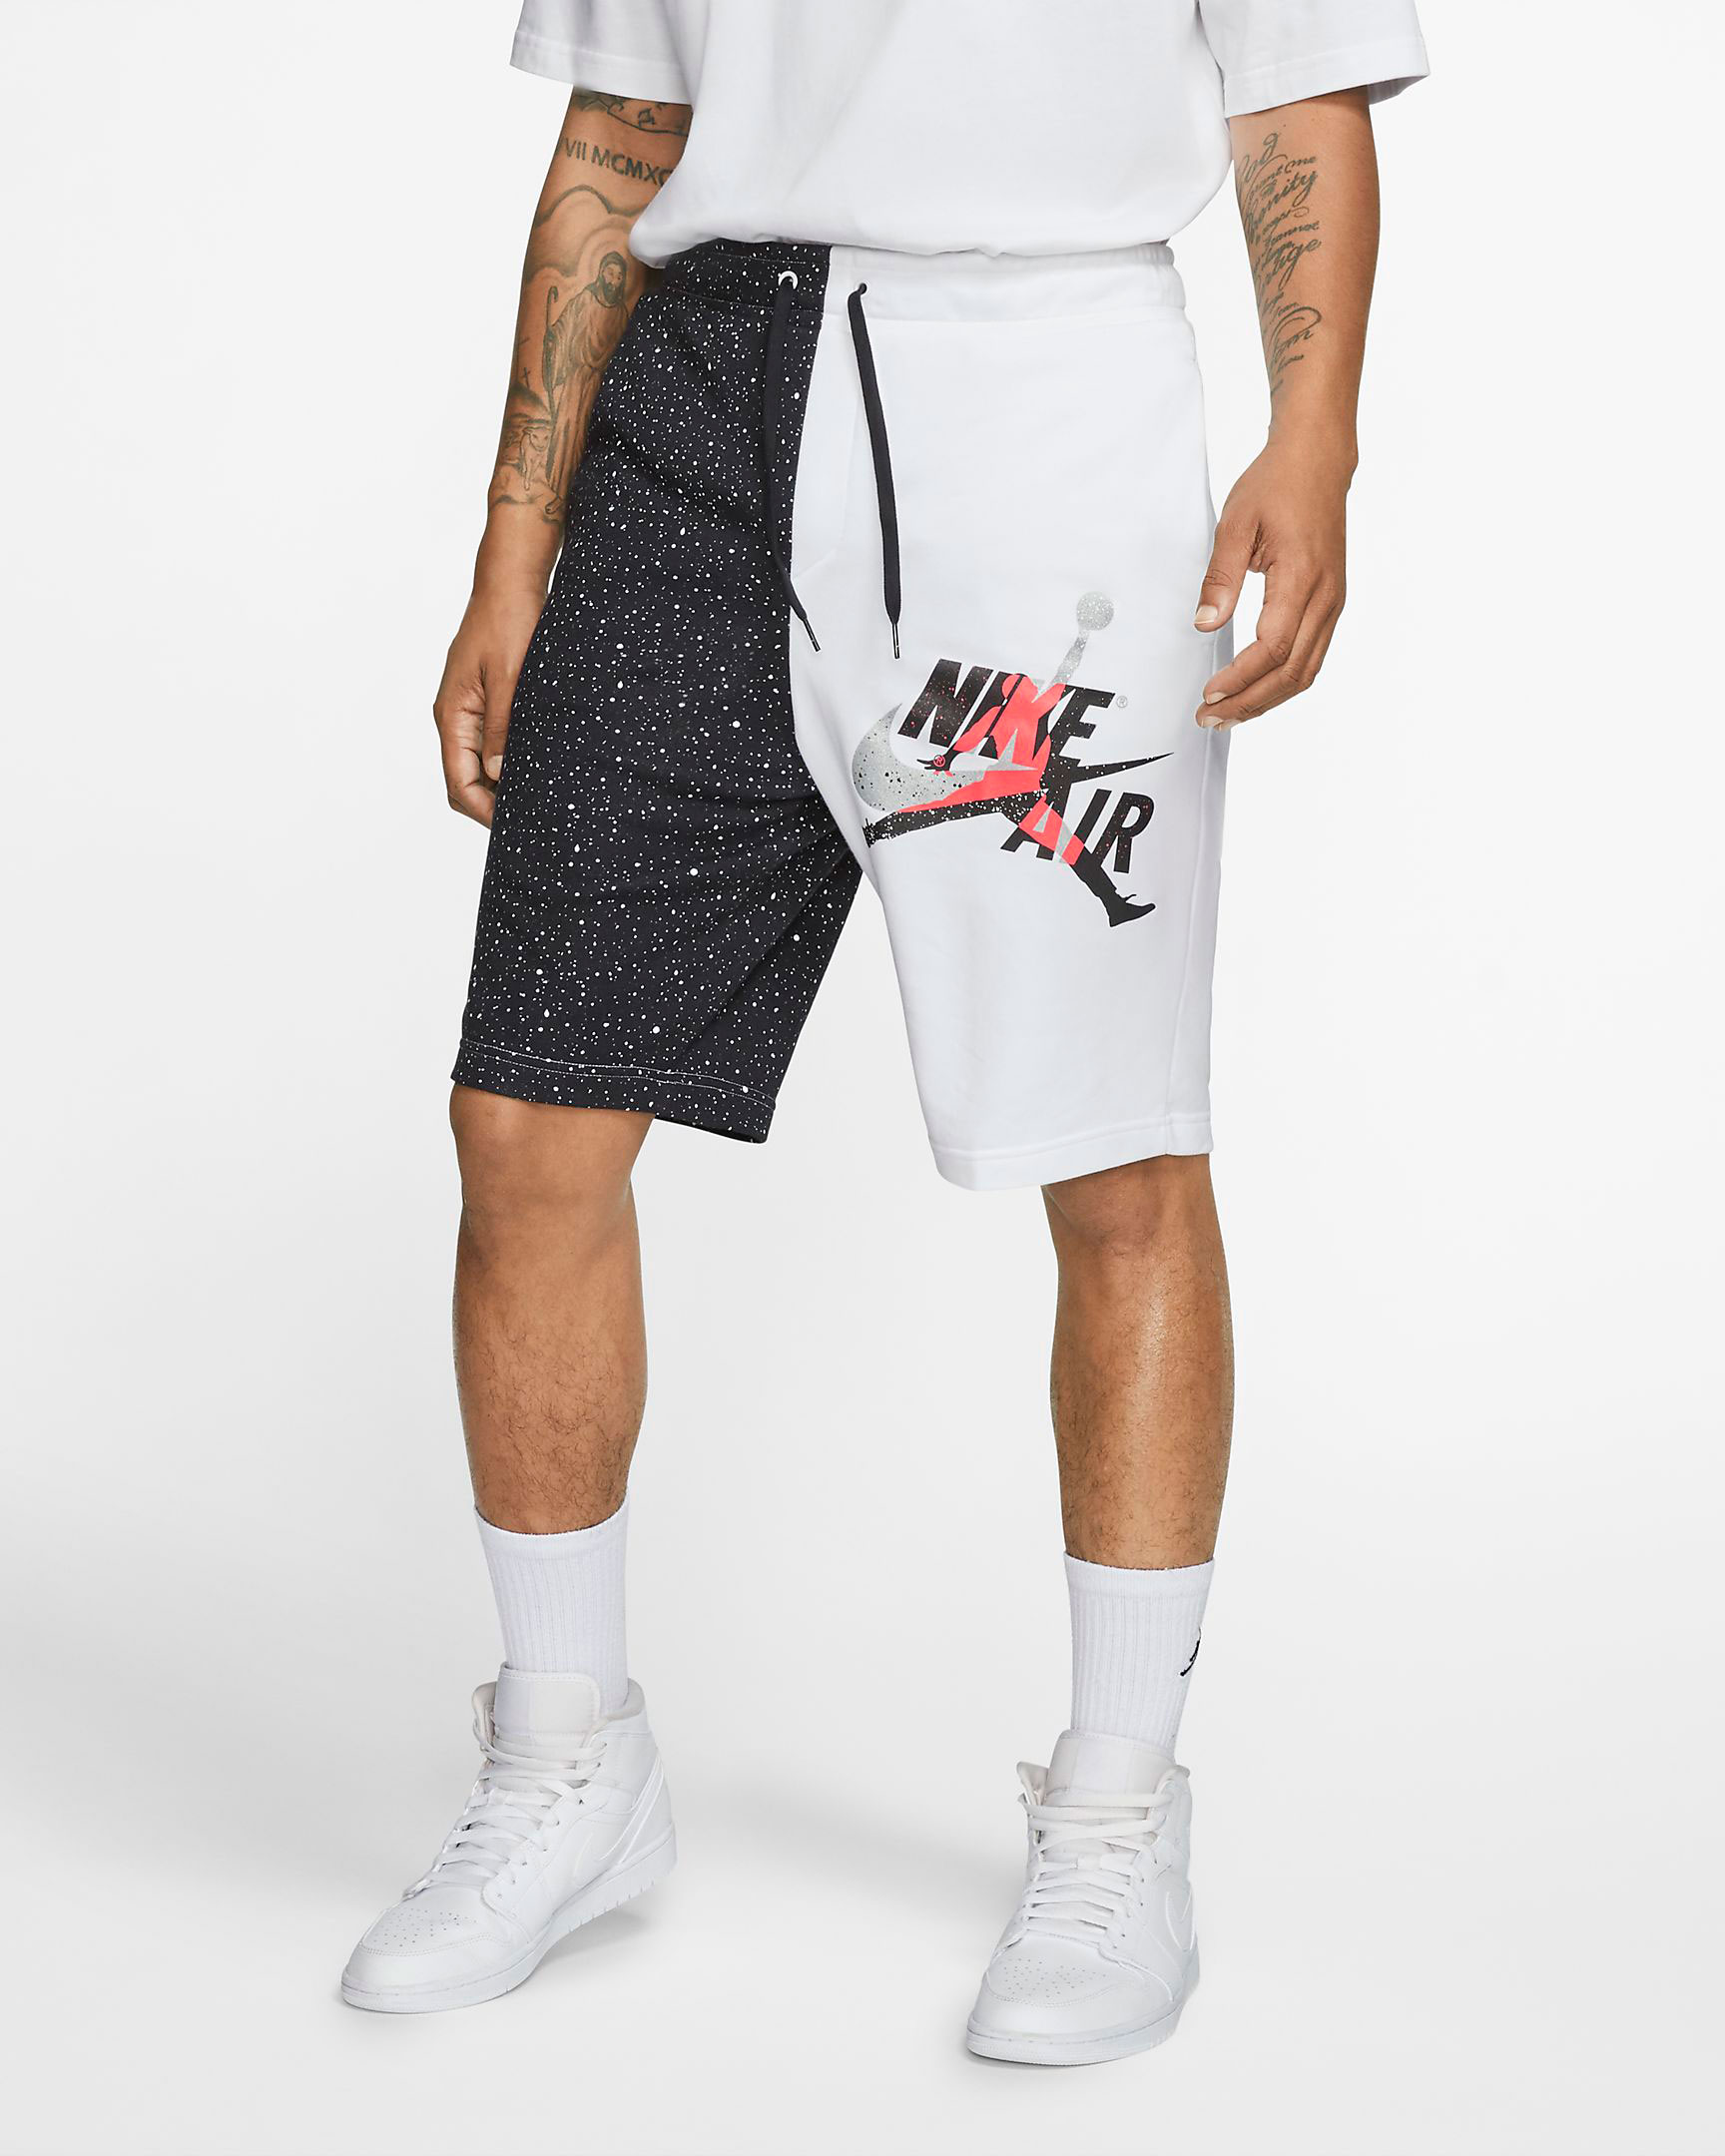 jordan-jumpman-classics-shorts-infrared-black-silver-1